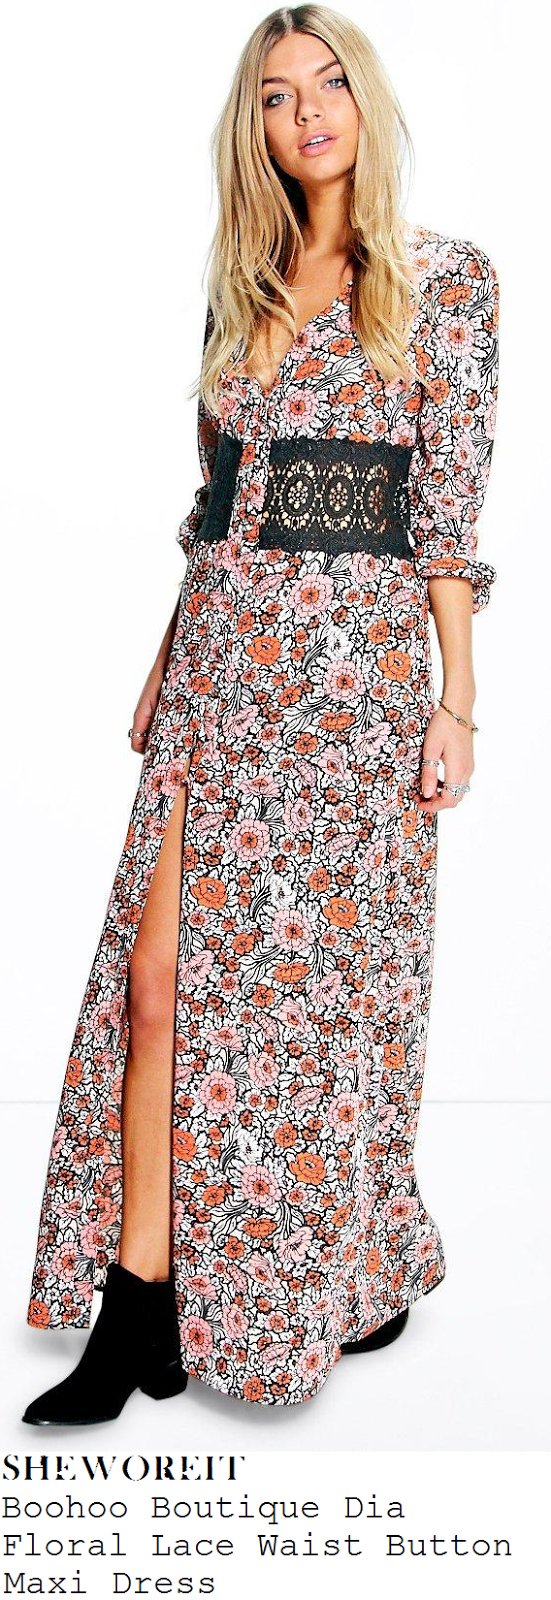 jodie-marsh-boohoo-boutique-dia-floral-lace-waist-button-maxi-dress